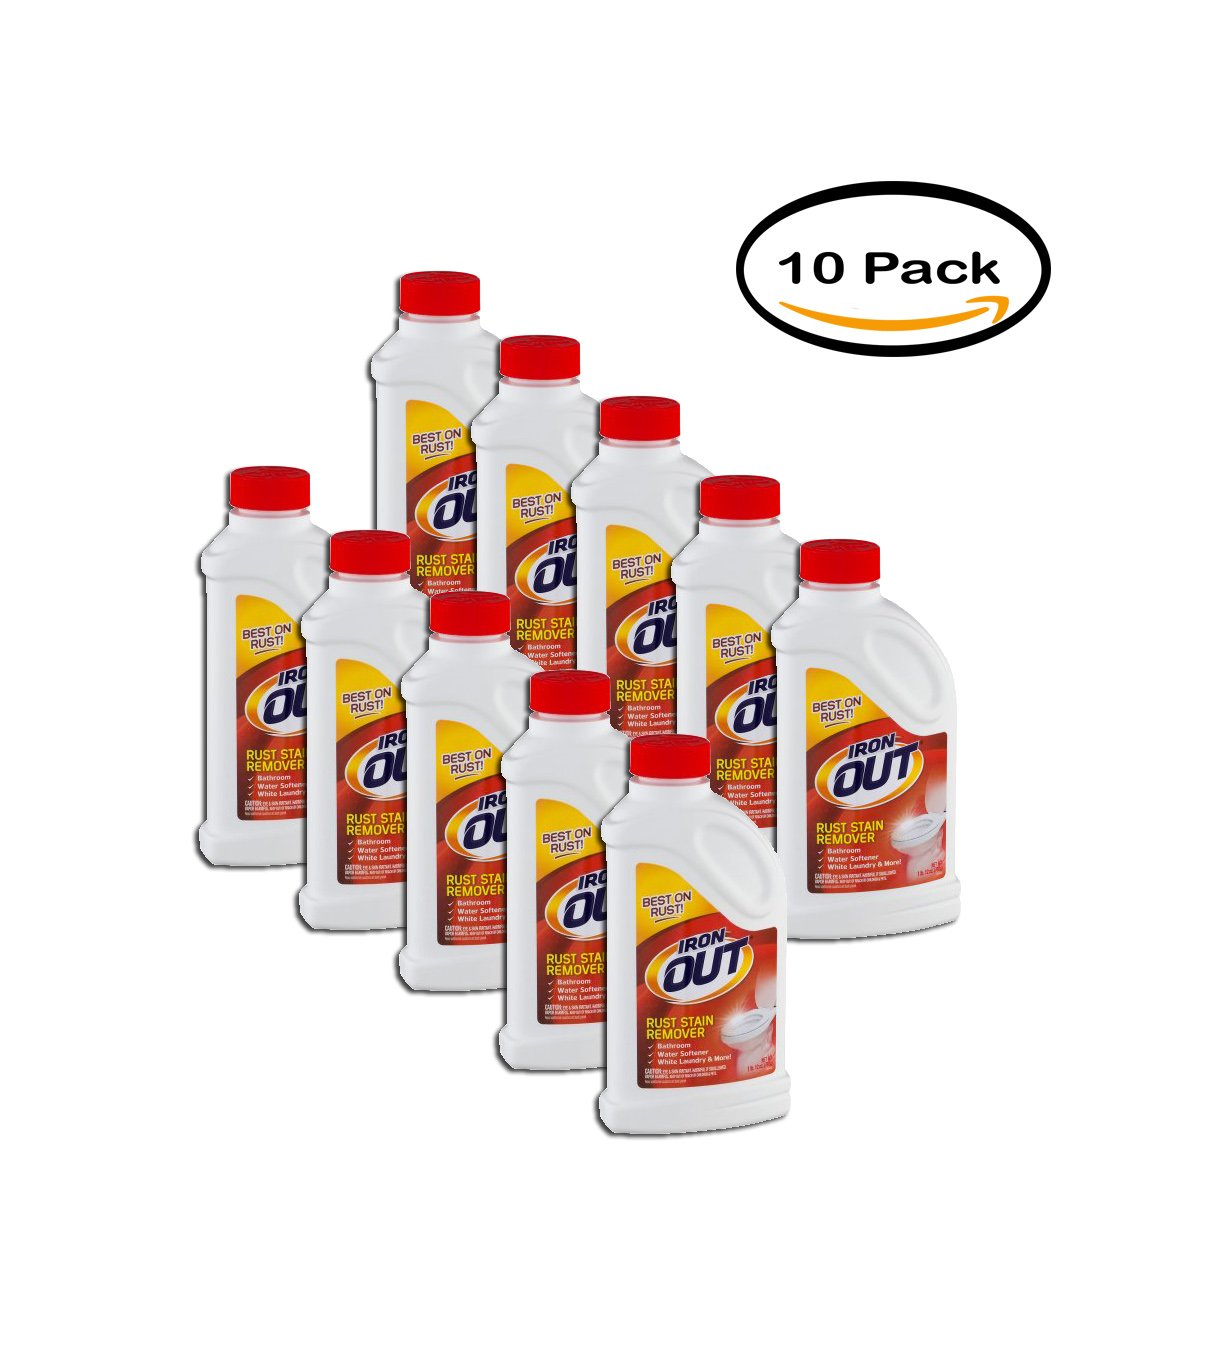 PACK OF 10 - Iron Out Rust Stain Remover, 28.0 OZ